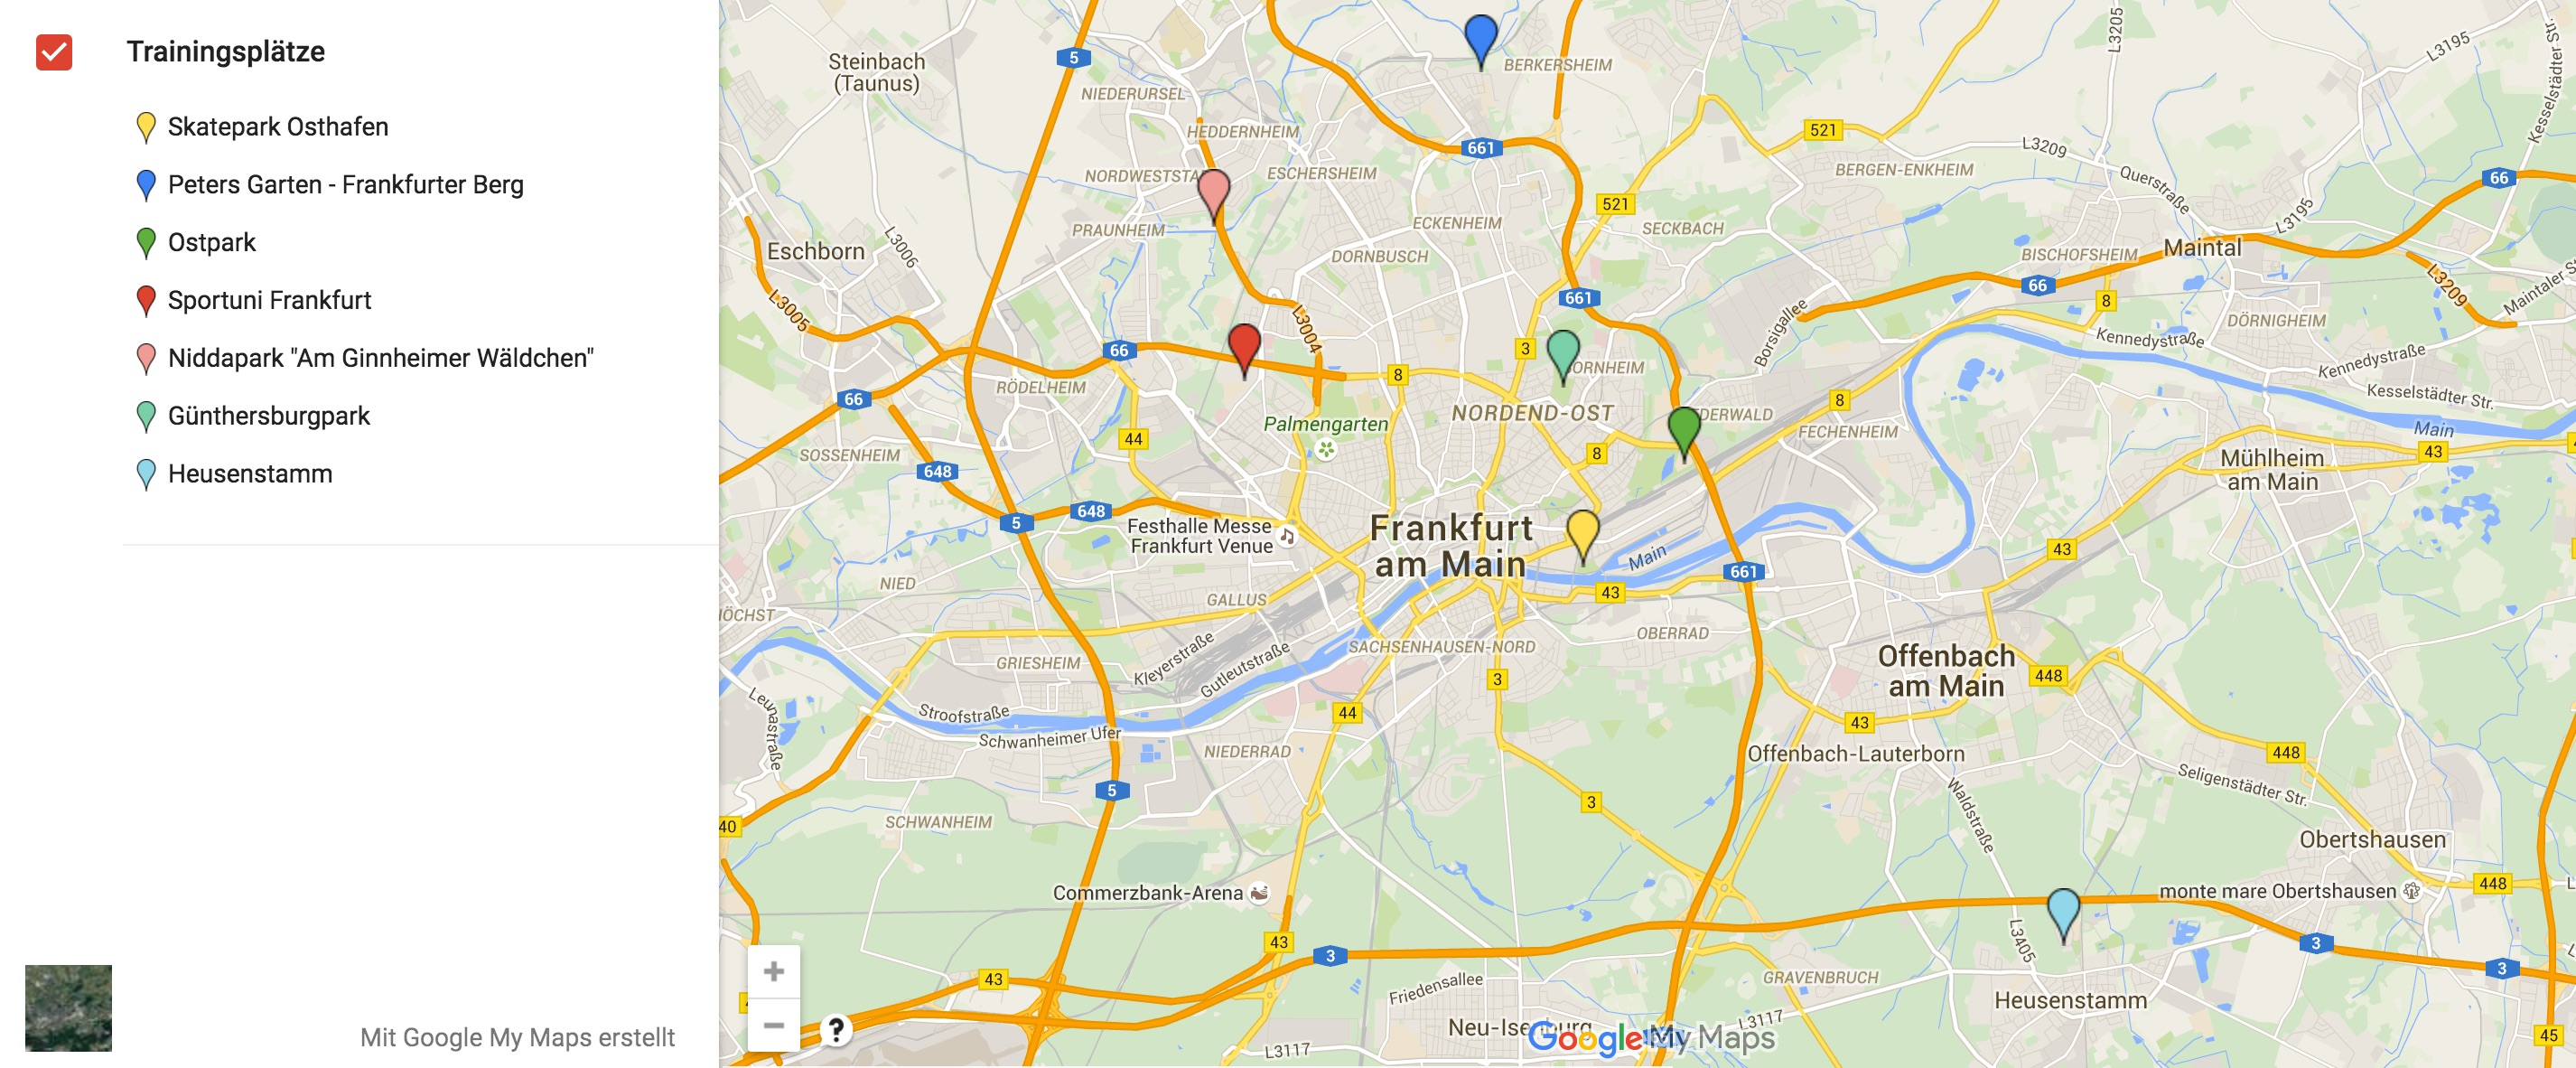 Freeletics_Trainingsplätze_Frankfurt_am_Main